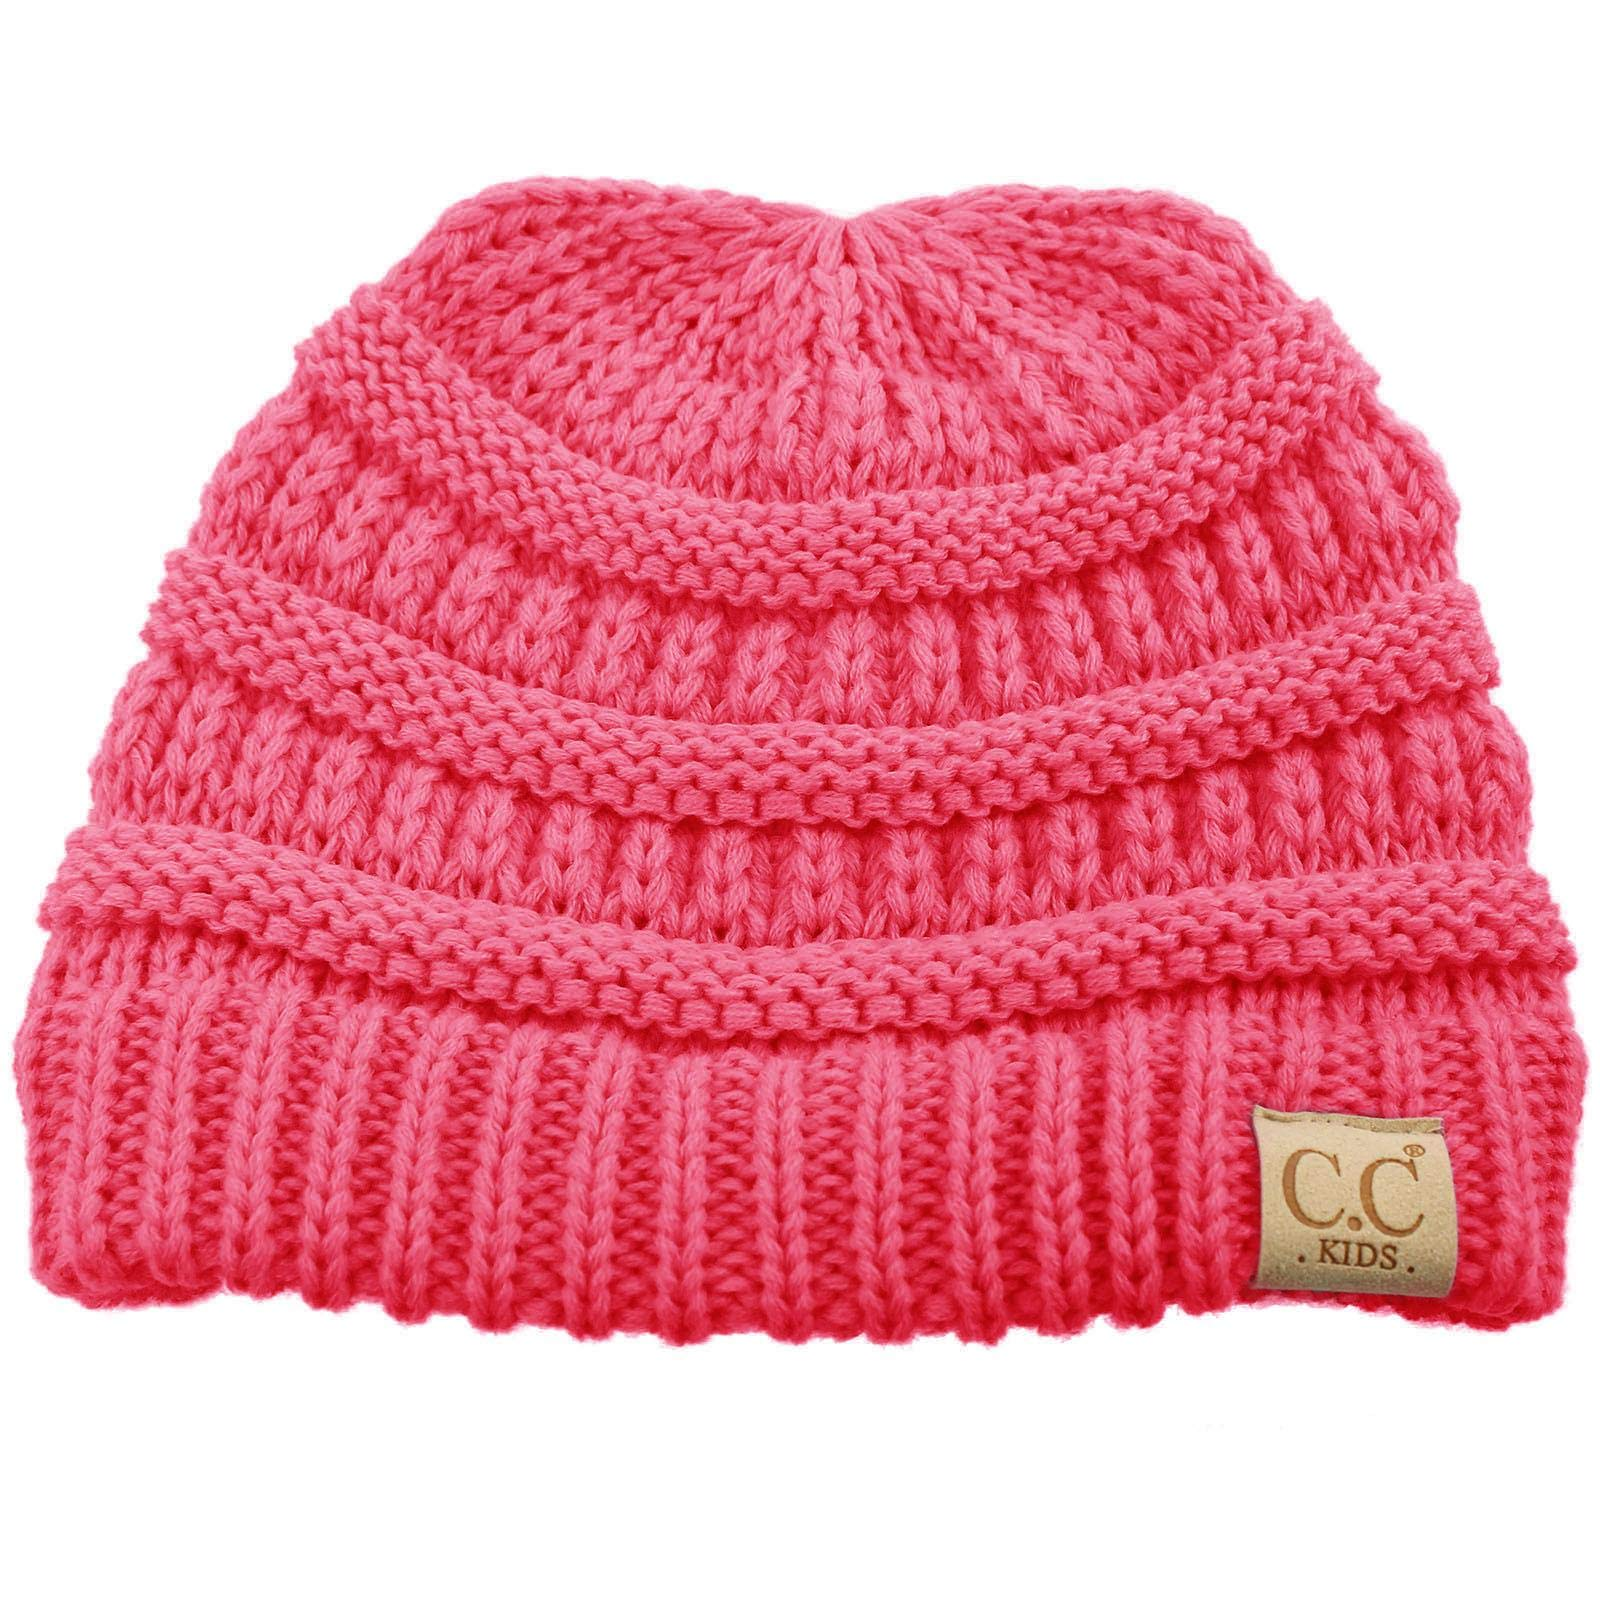 Kids Ages 2-7 Warm Chunky Thick Stretchy Knit Slouch Beanie Skull Hat New CD Pink